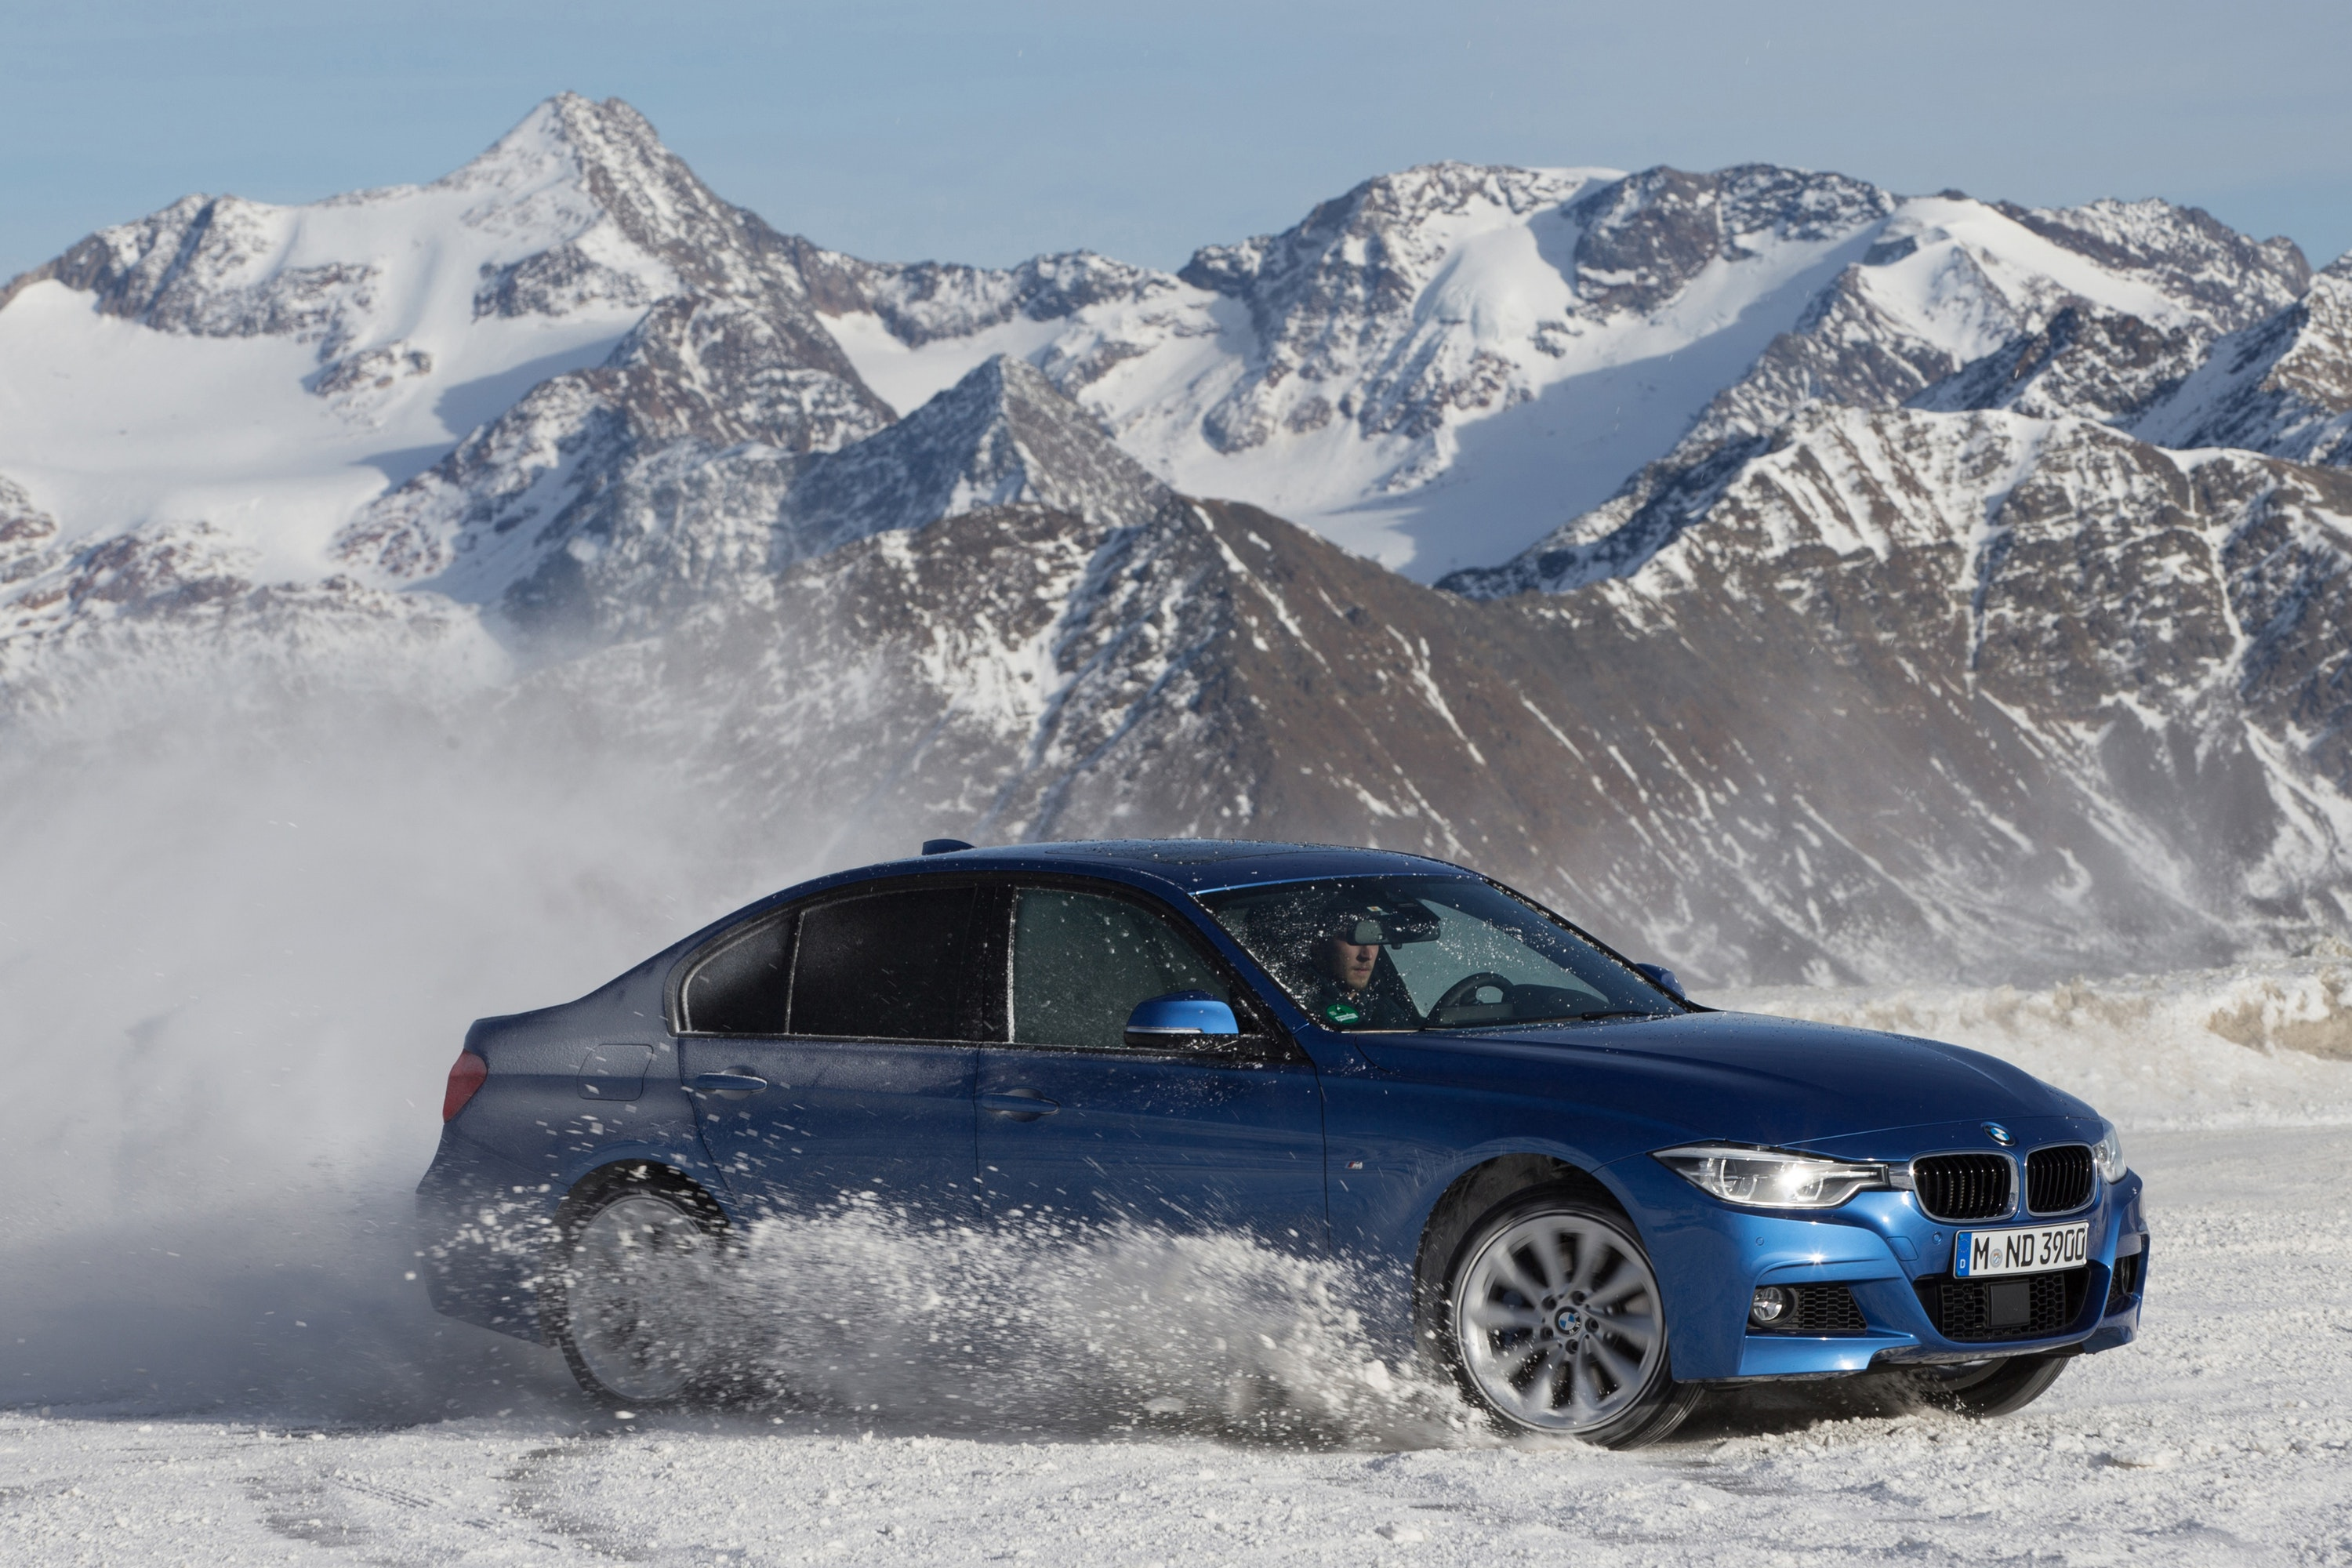 Blue BMW driving in snow